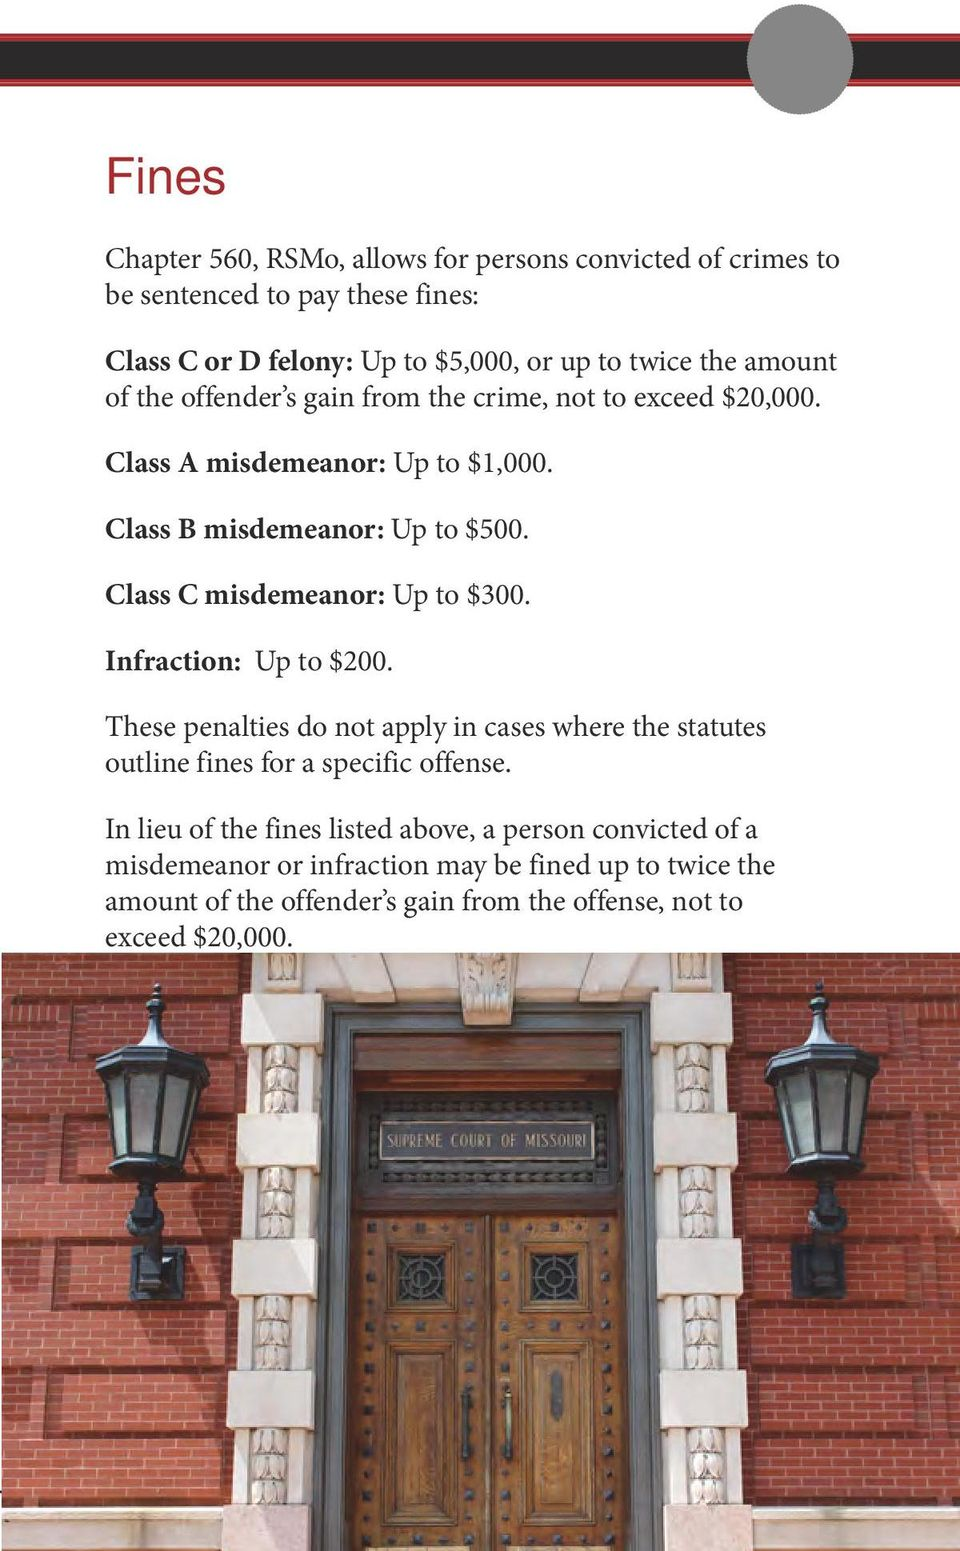 Class C misdemeanor: Up to $300. Infraction: Up to $200. These penalties do not apply in cases where the statutes outline fines for a specific offense.